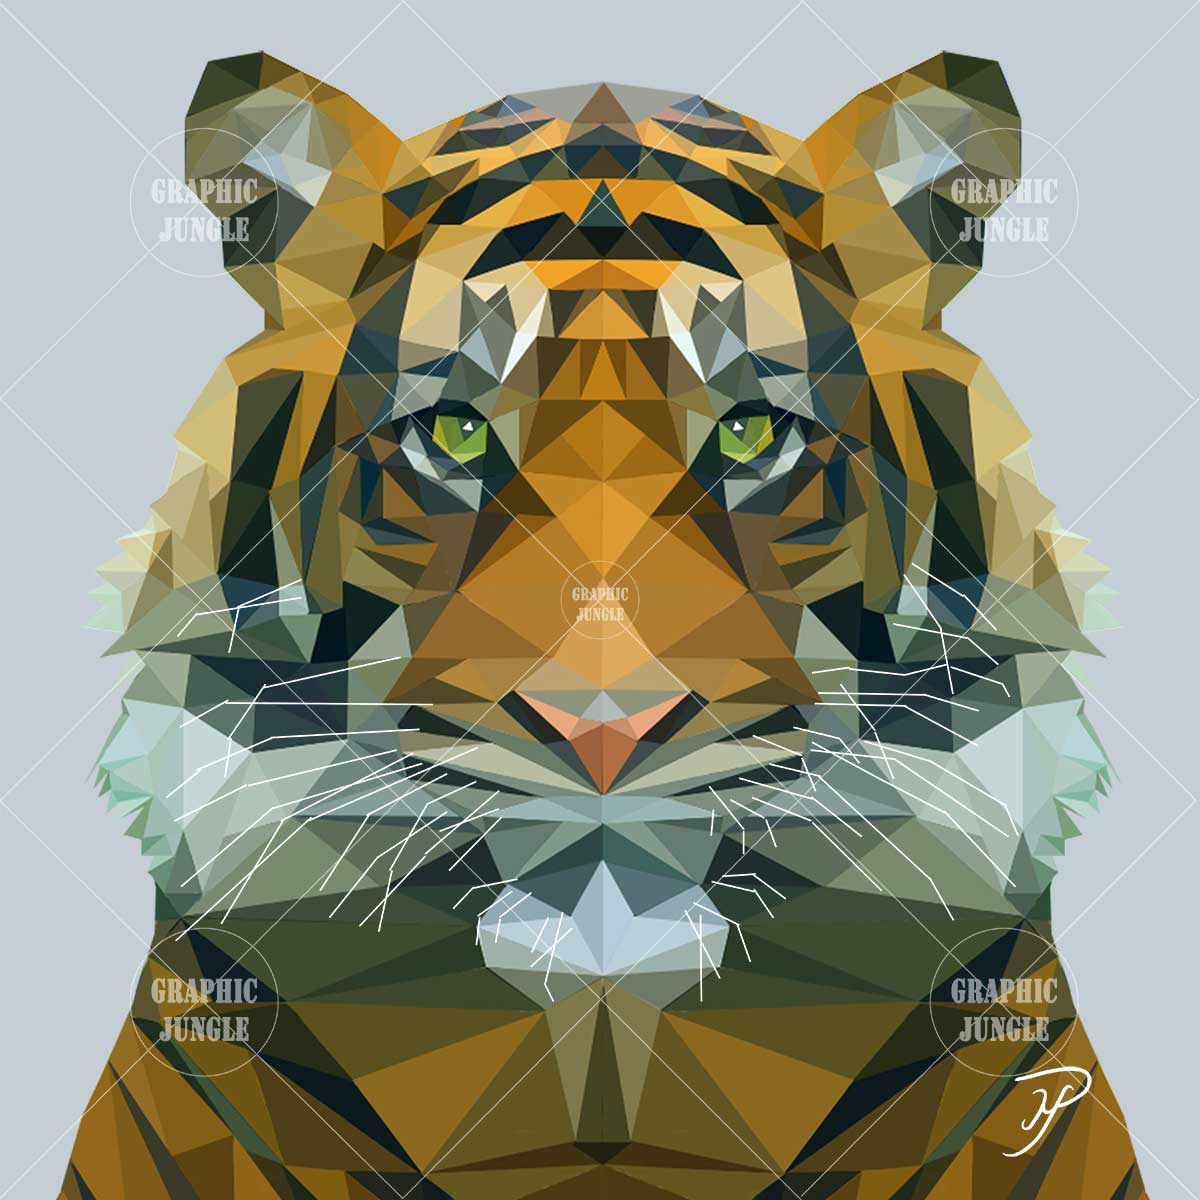 01 TIGER - Graphic Jungle